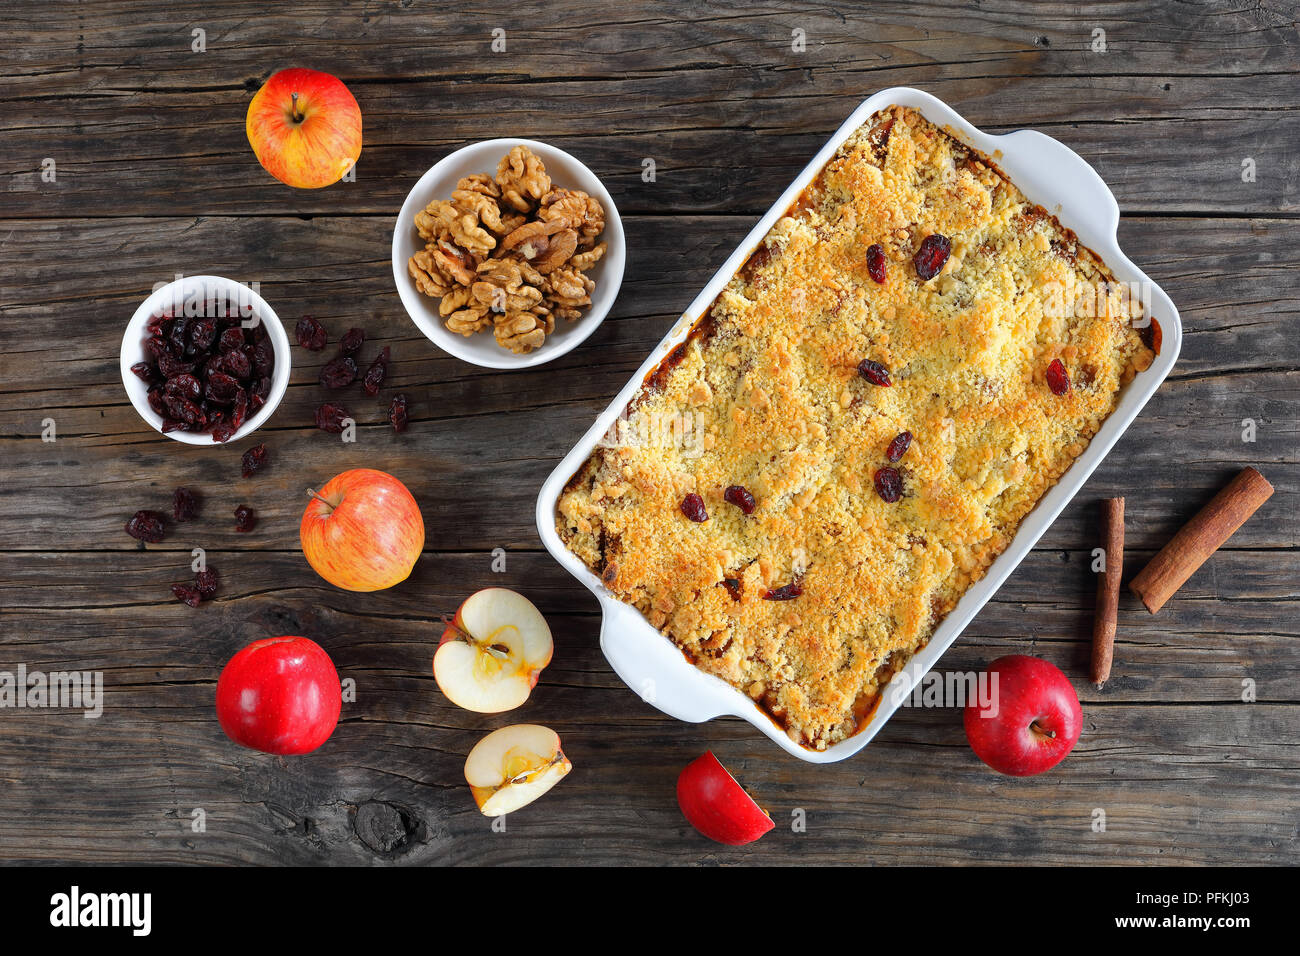 homemade apple crumble or apple crisp in baking dish - dessert consisting of baked chopped apples, topped with a crisp streusel crust, horizontal view - Stock Image